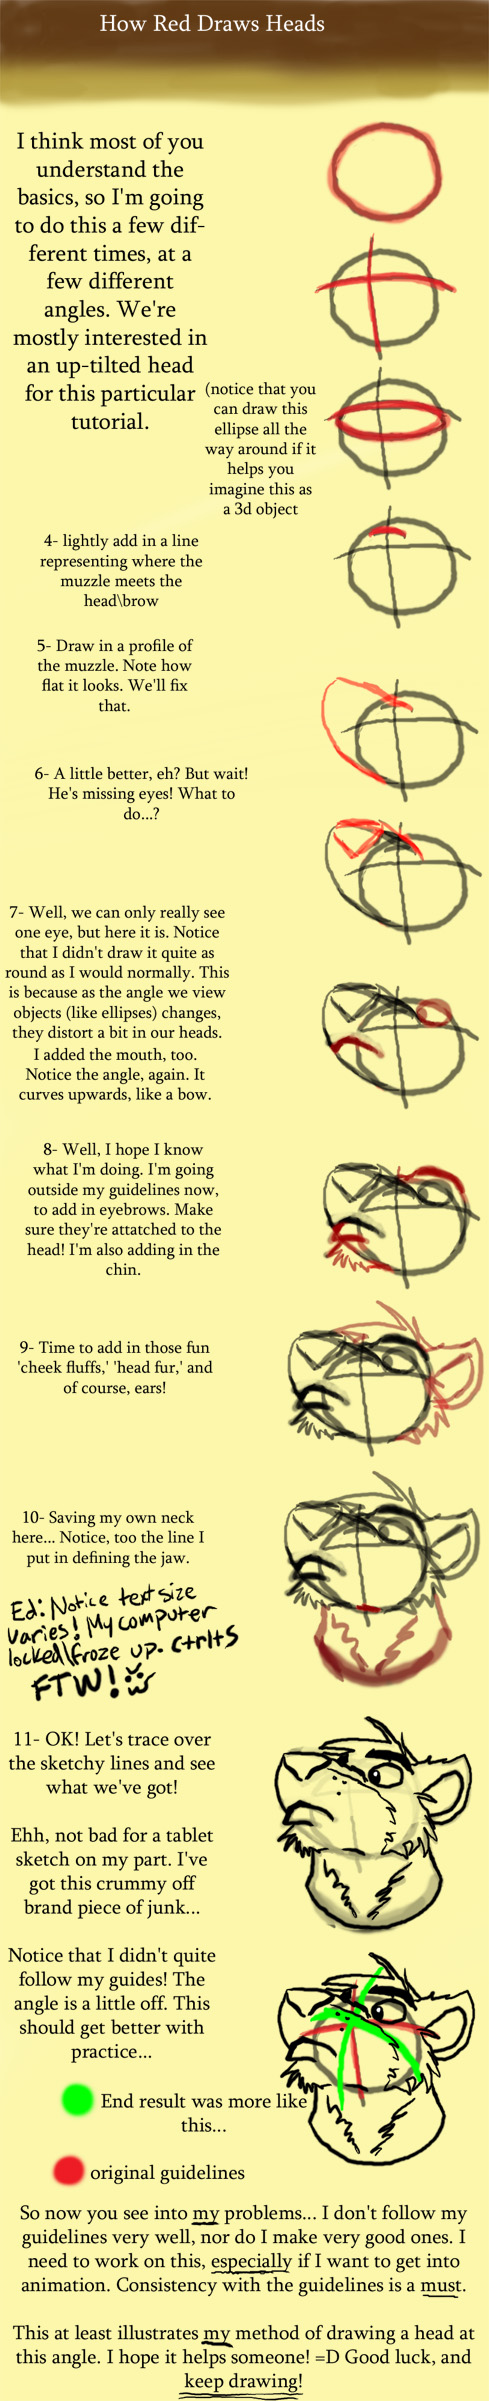 How Red Draws Heads Tutorial by RedRodent